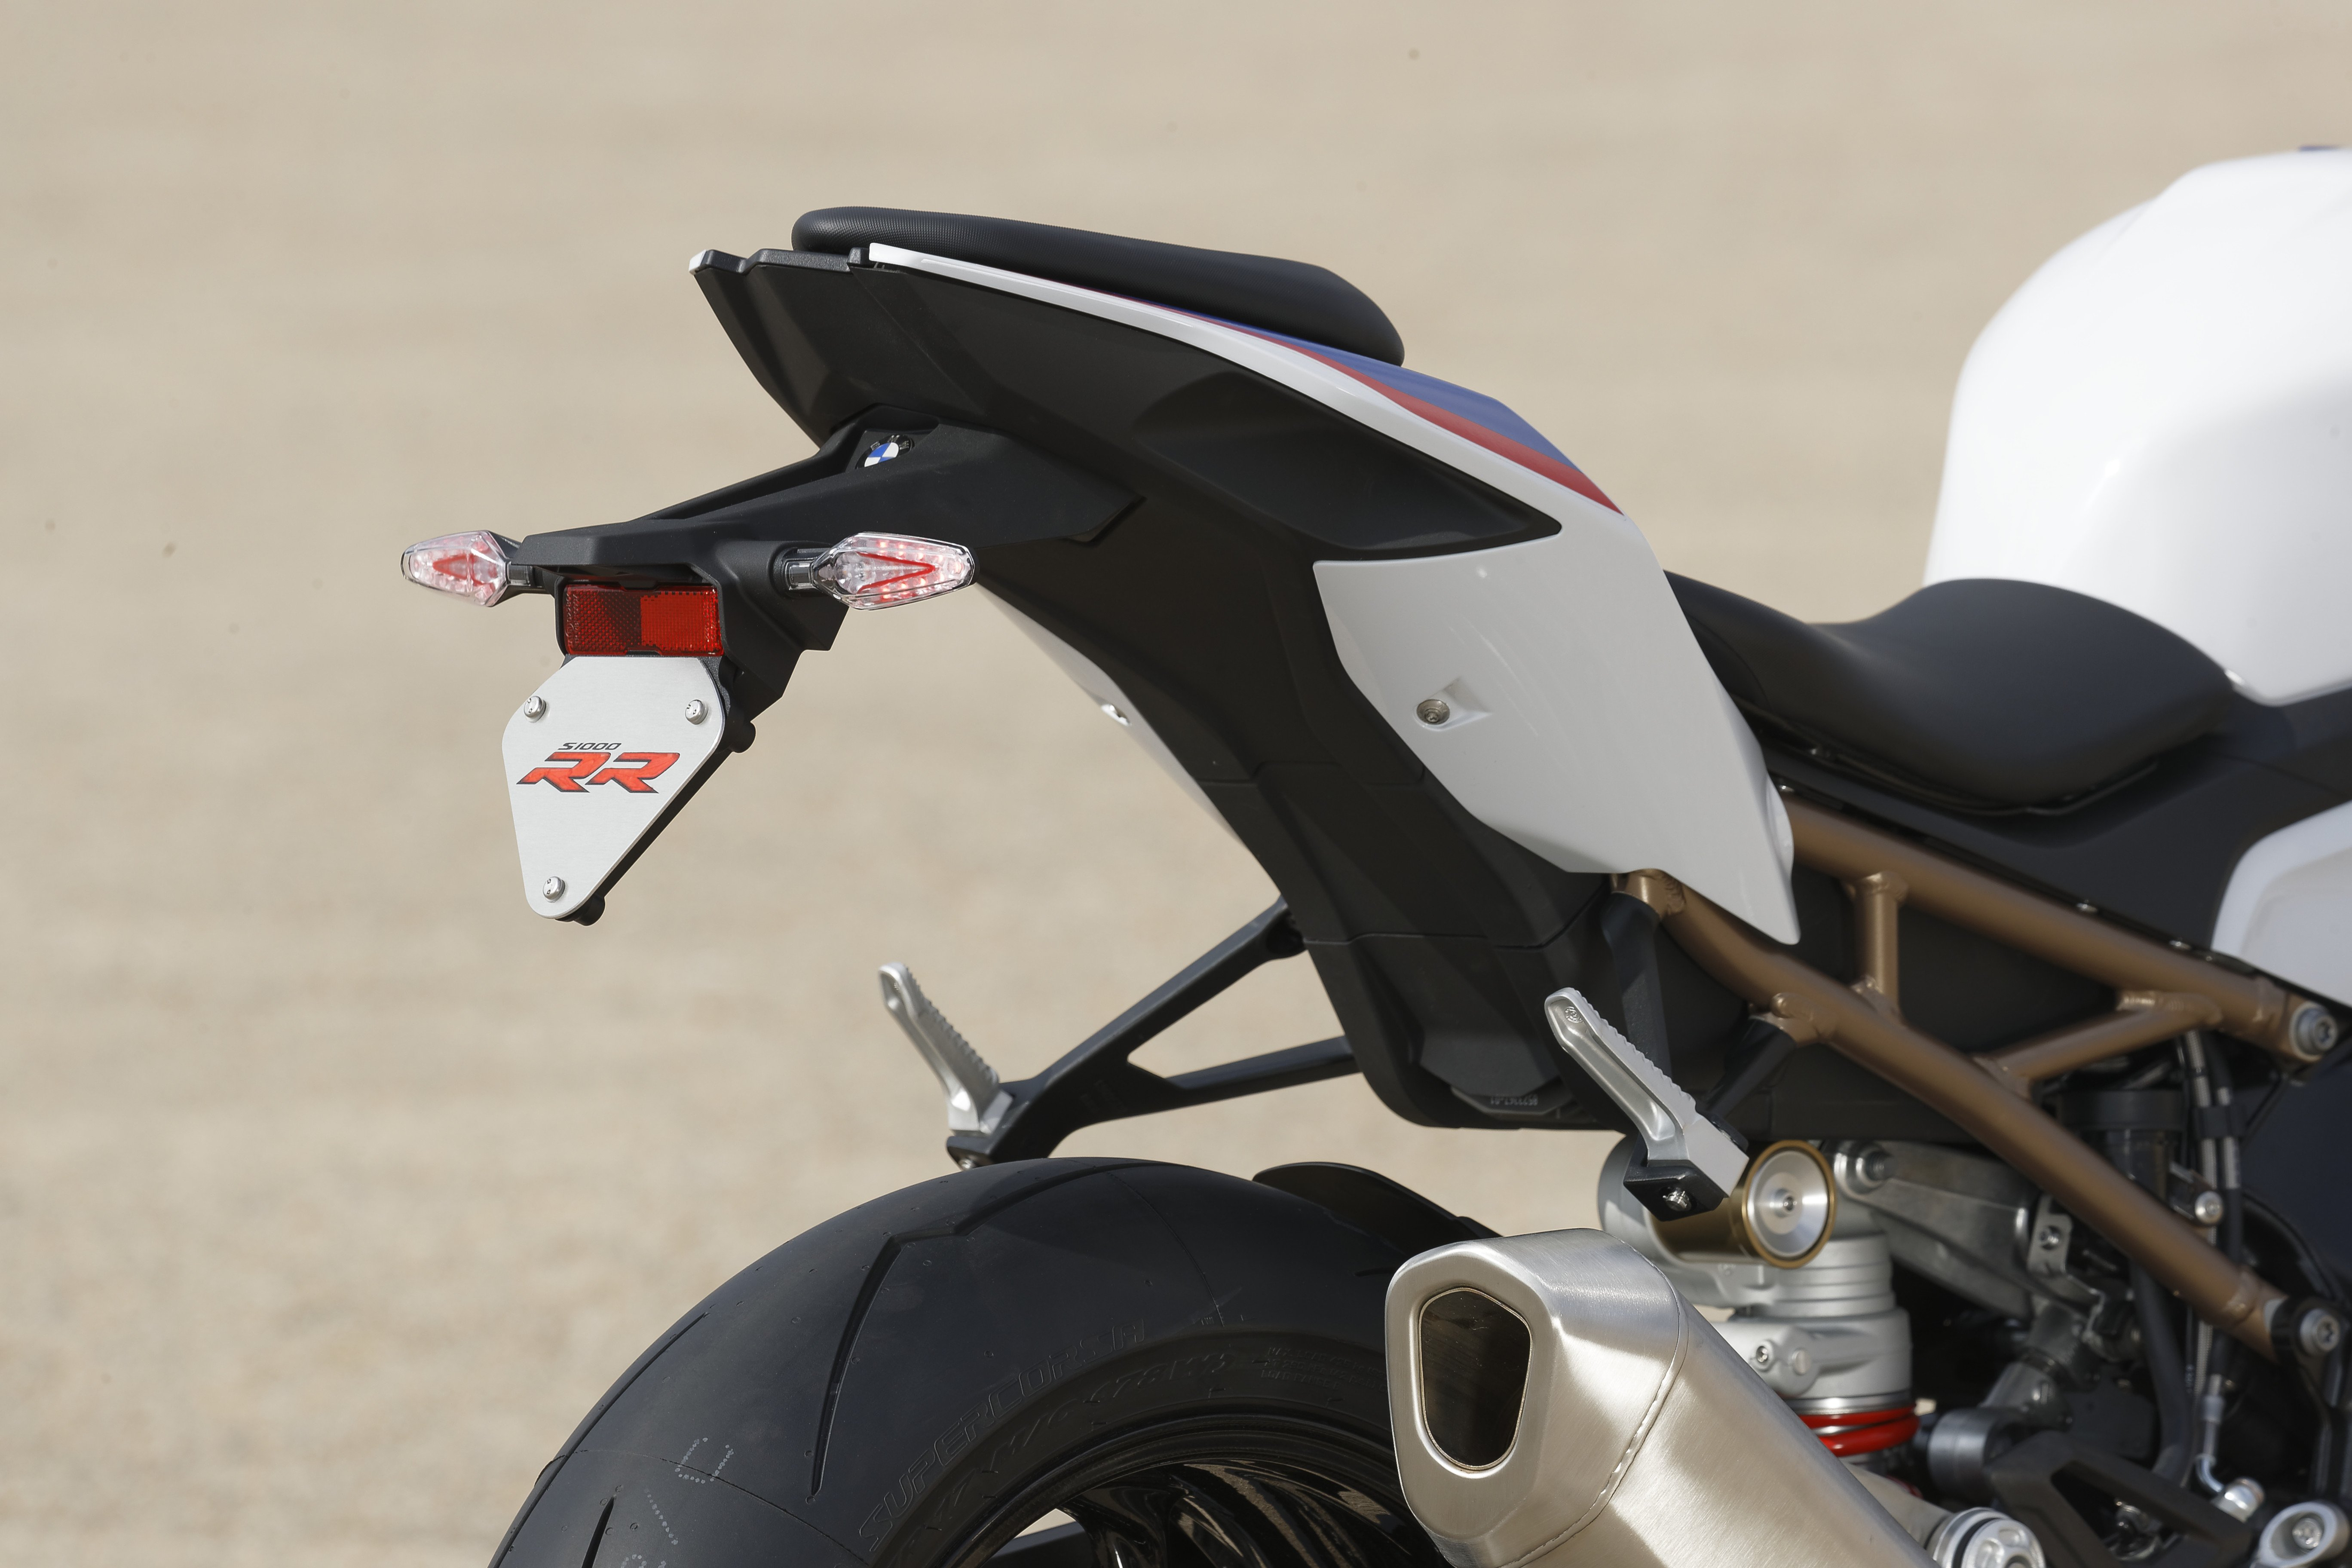 s1000rr 2019 - motorcycles in thailand